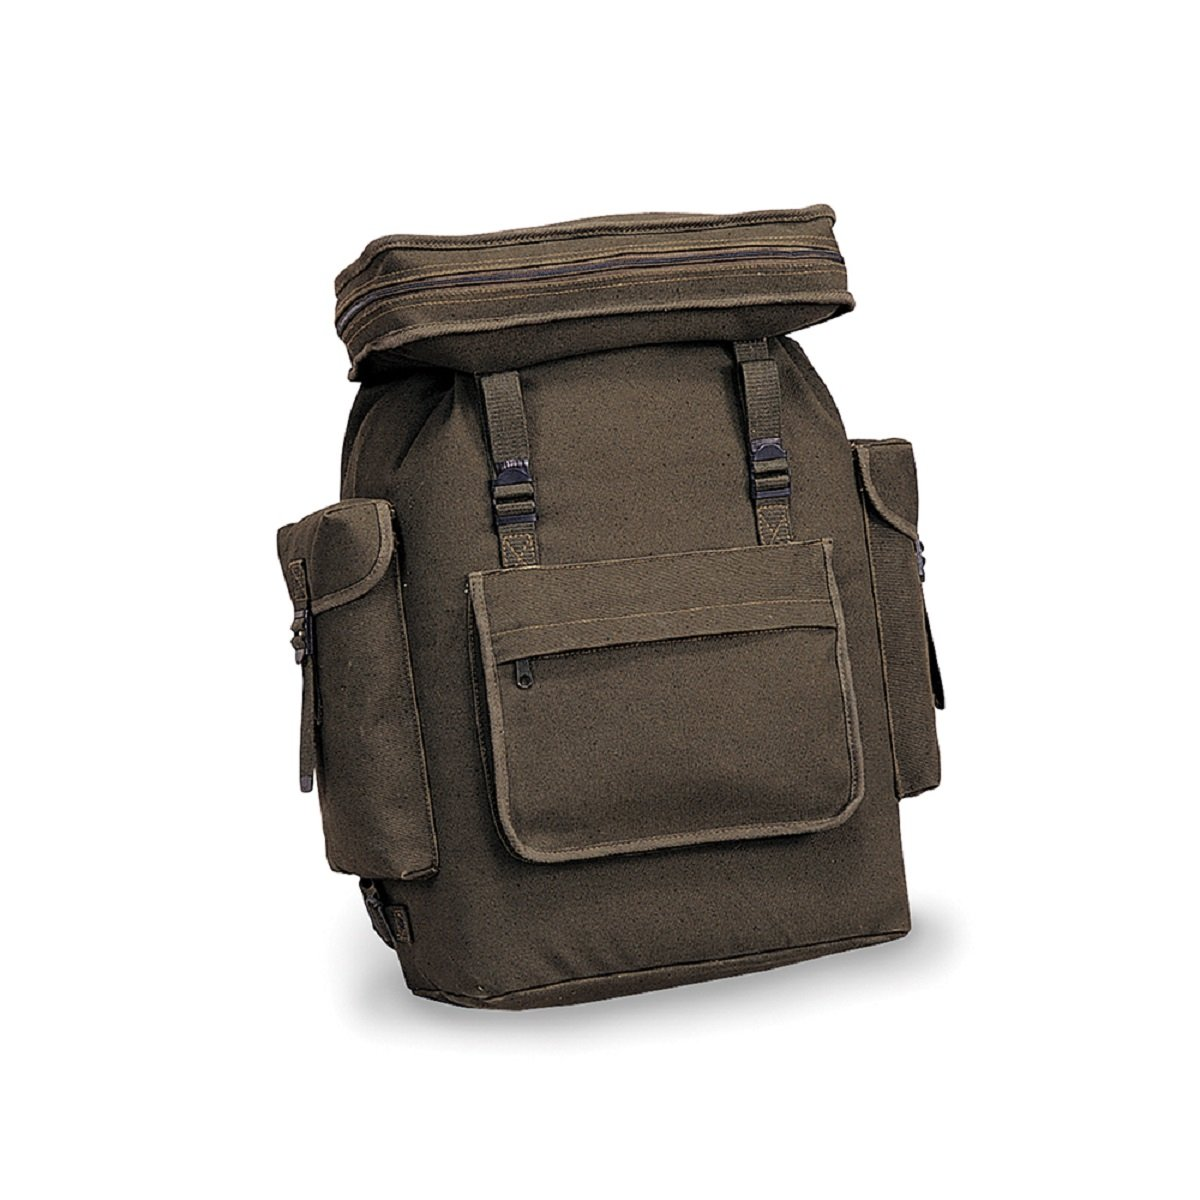 EUROPEAN STYLE KNAPSACK - O.D., Case of 12 by DollarItemDirect